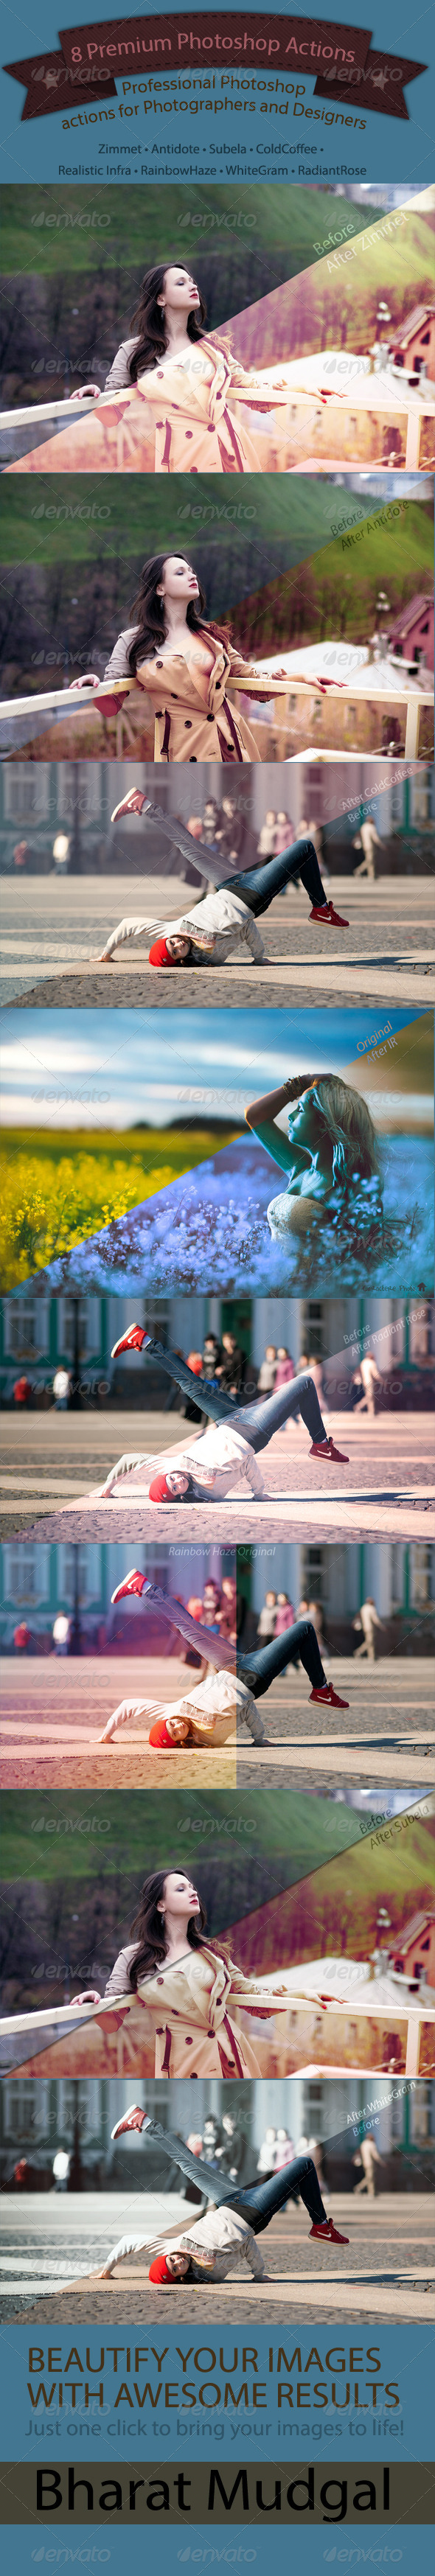 GraphicRiver 8 Professional Photoshop Actions 4701786